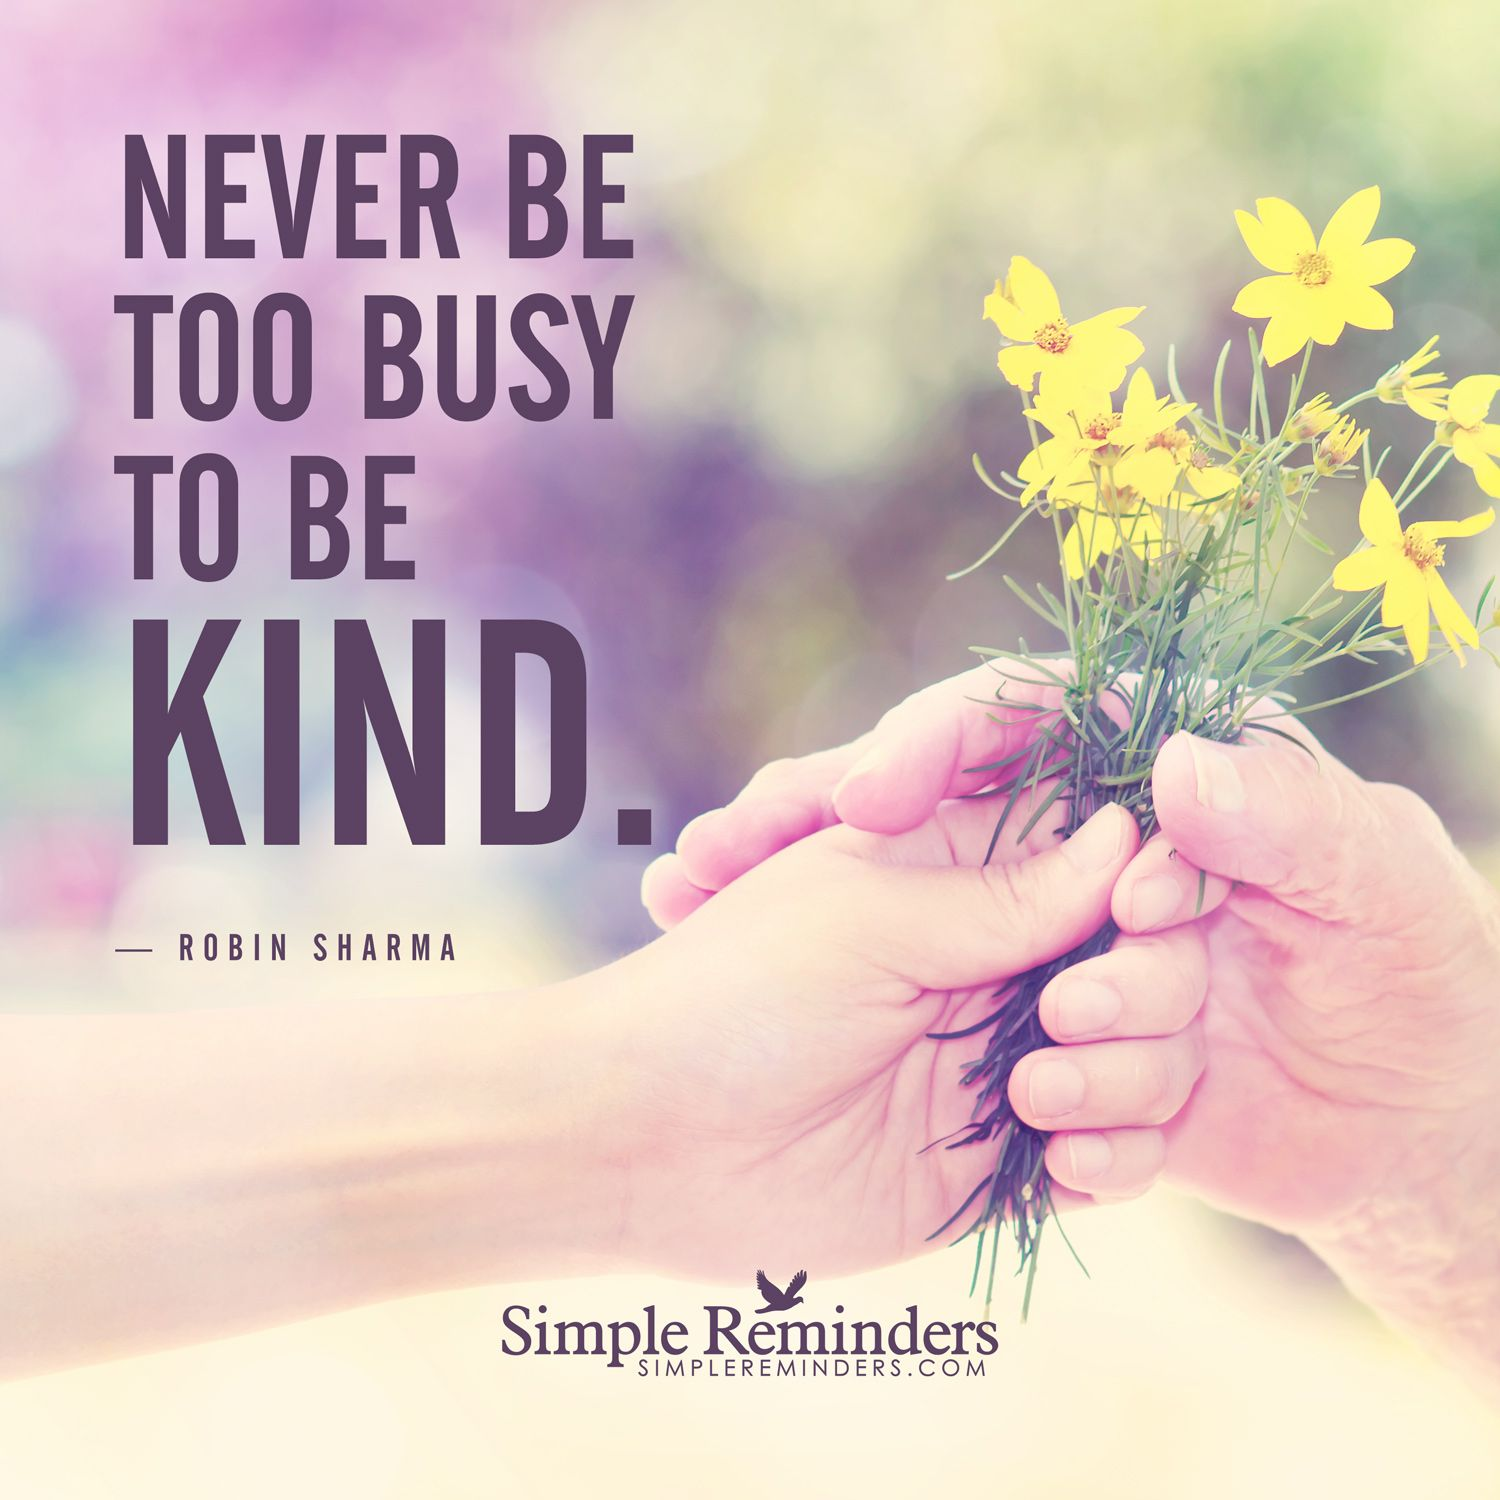 Too Kind Quotes: Never Be Too Busy To Be Kind Never Be Too Busy To Be Kind